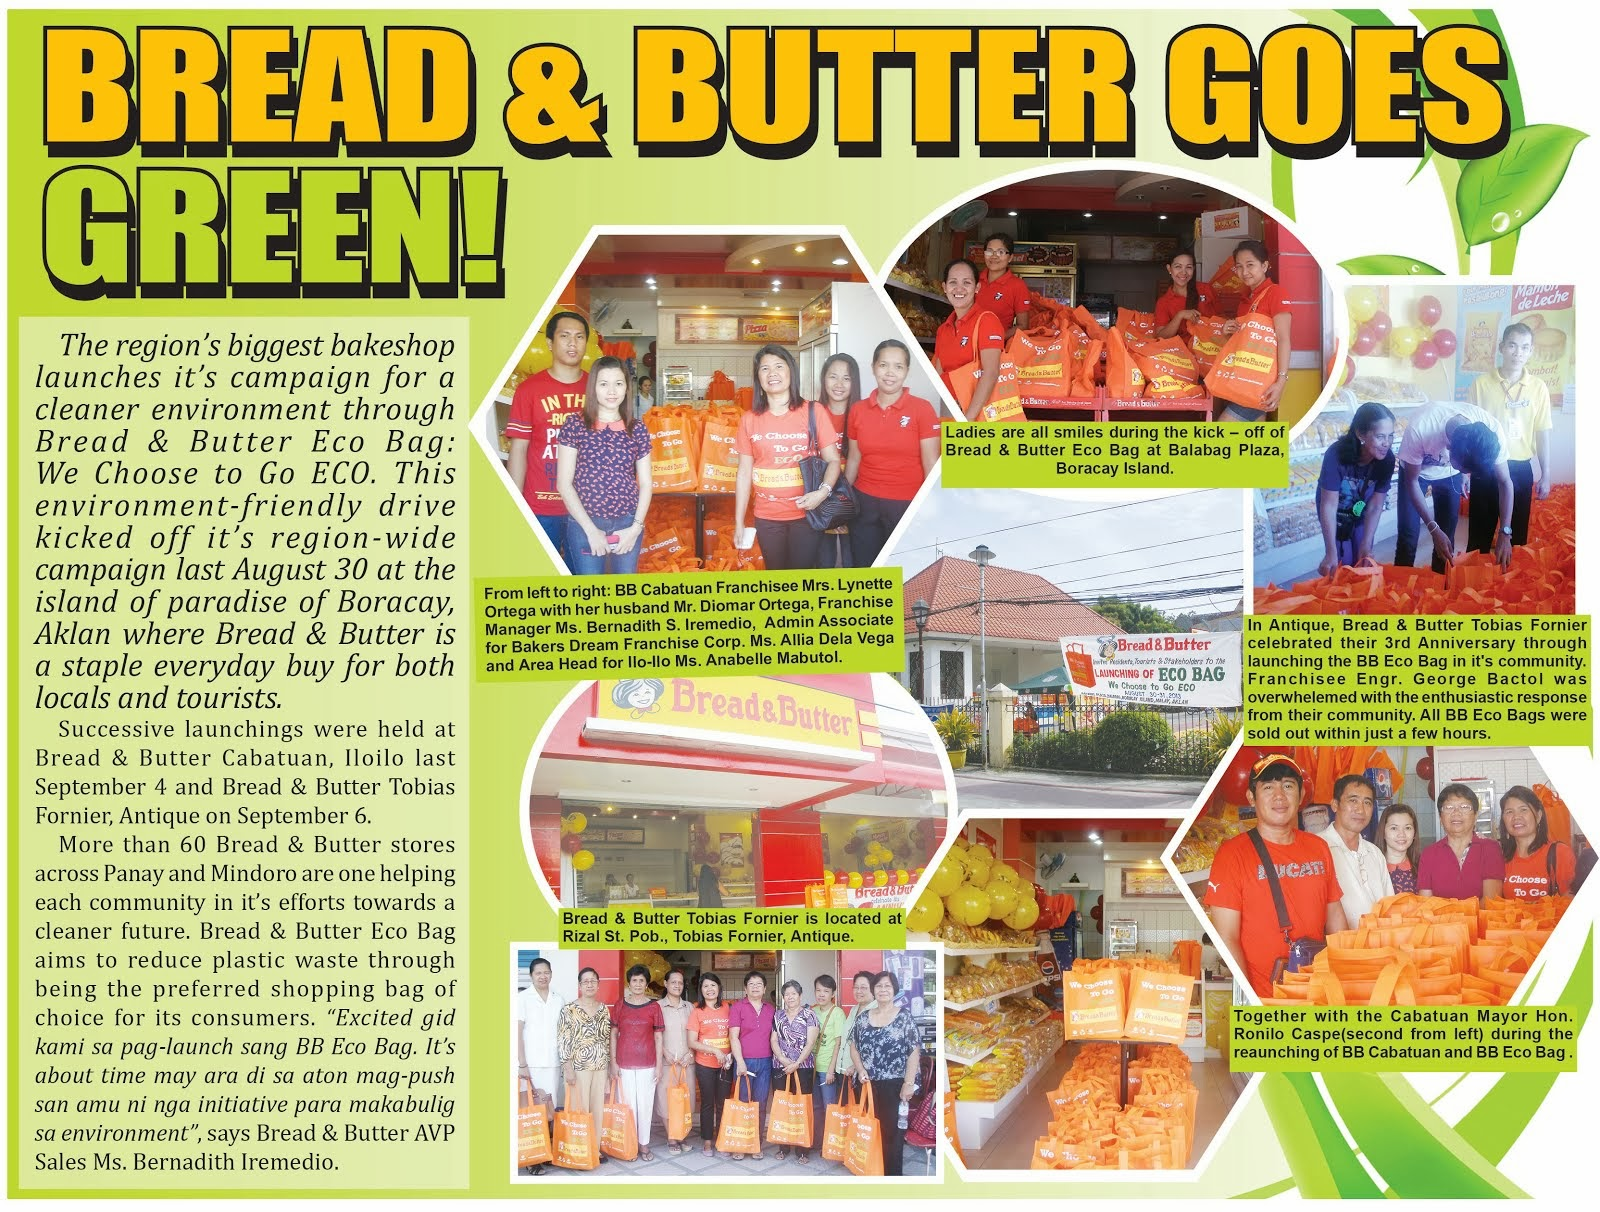 Bread & Butter chooses to go ECO!